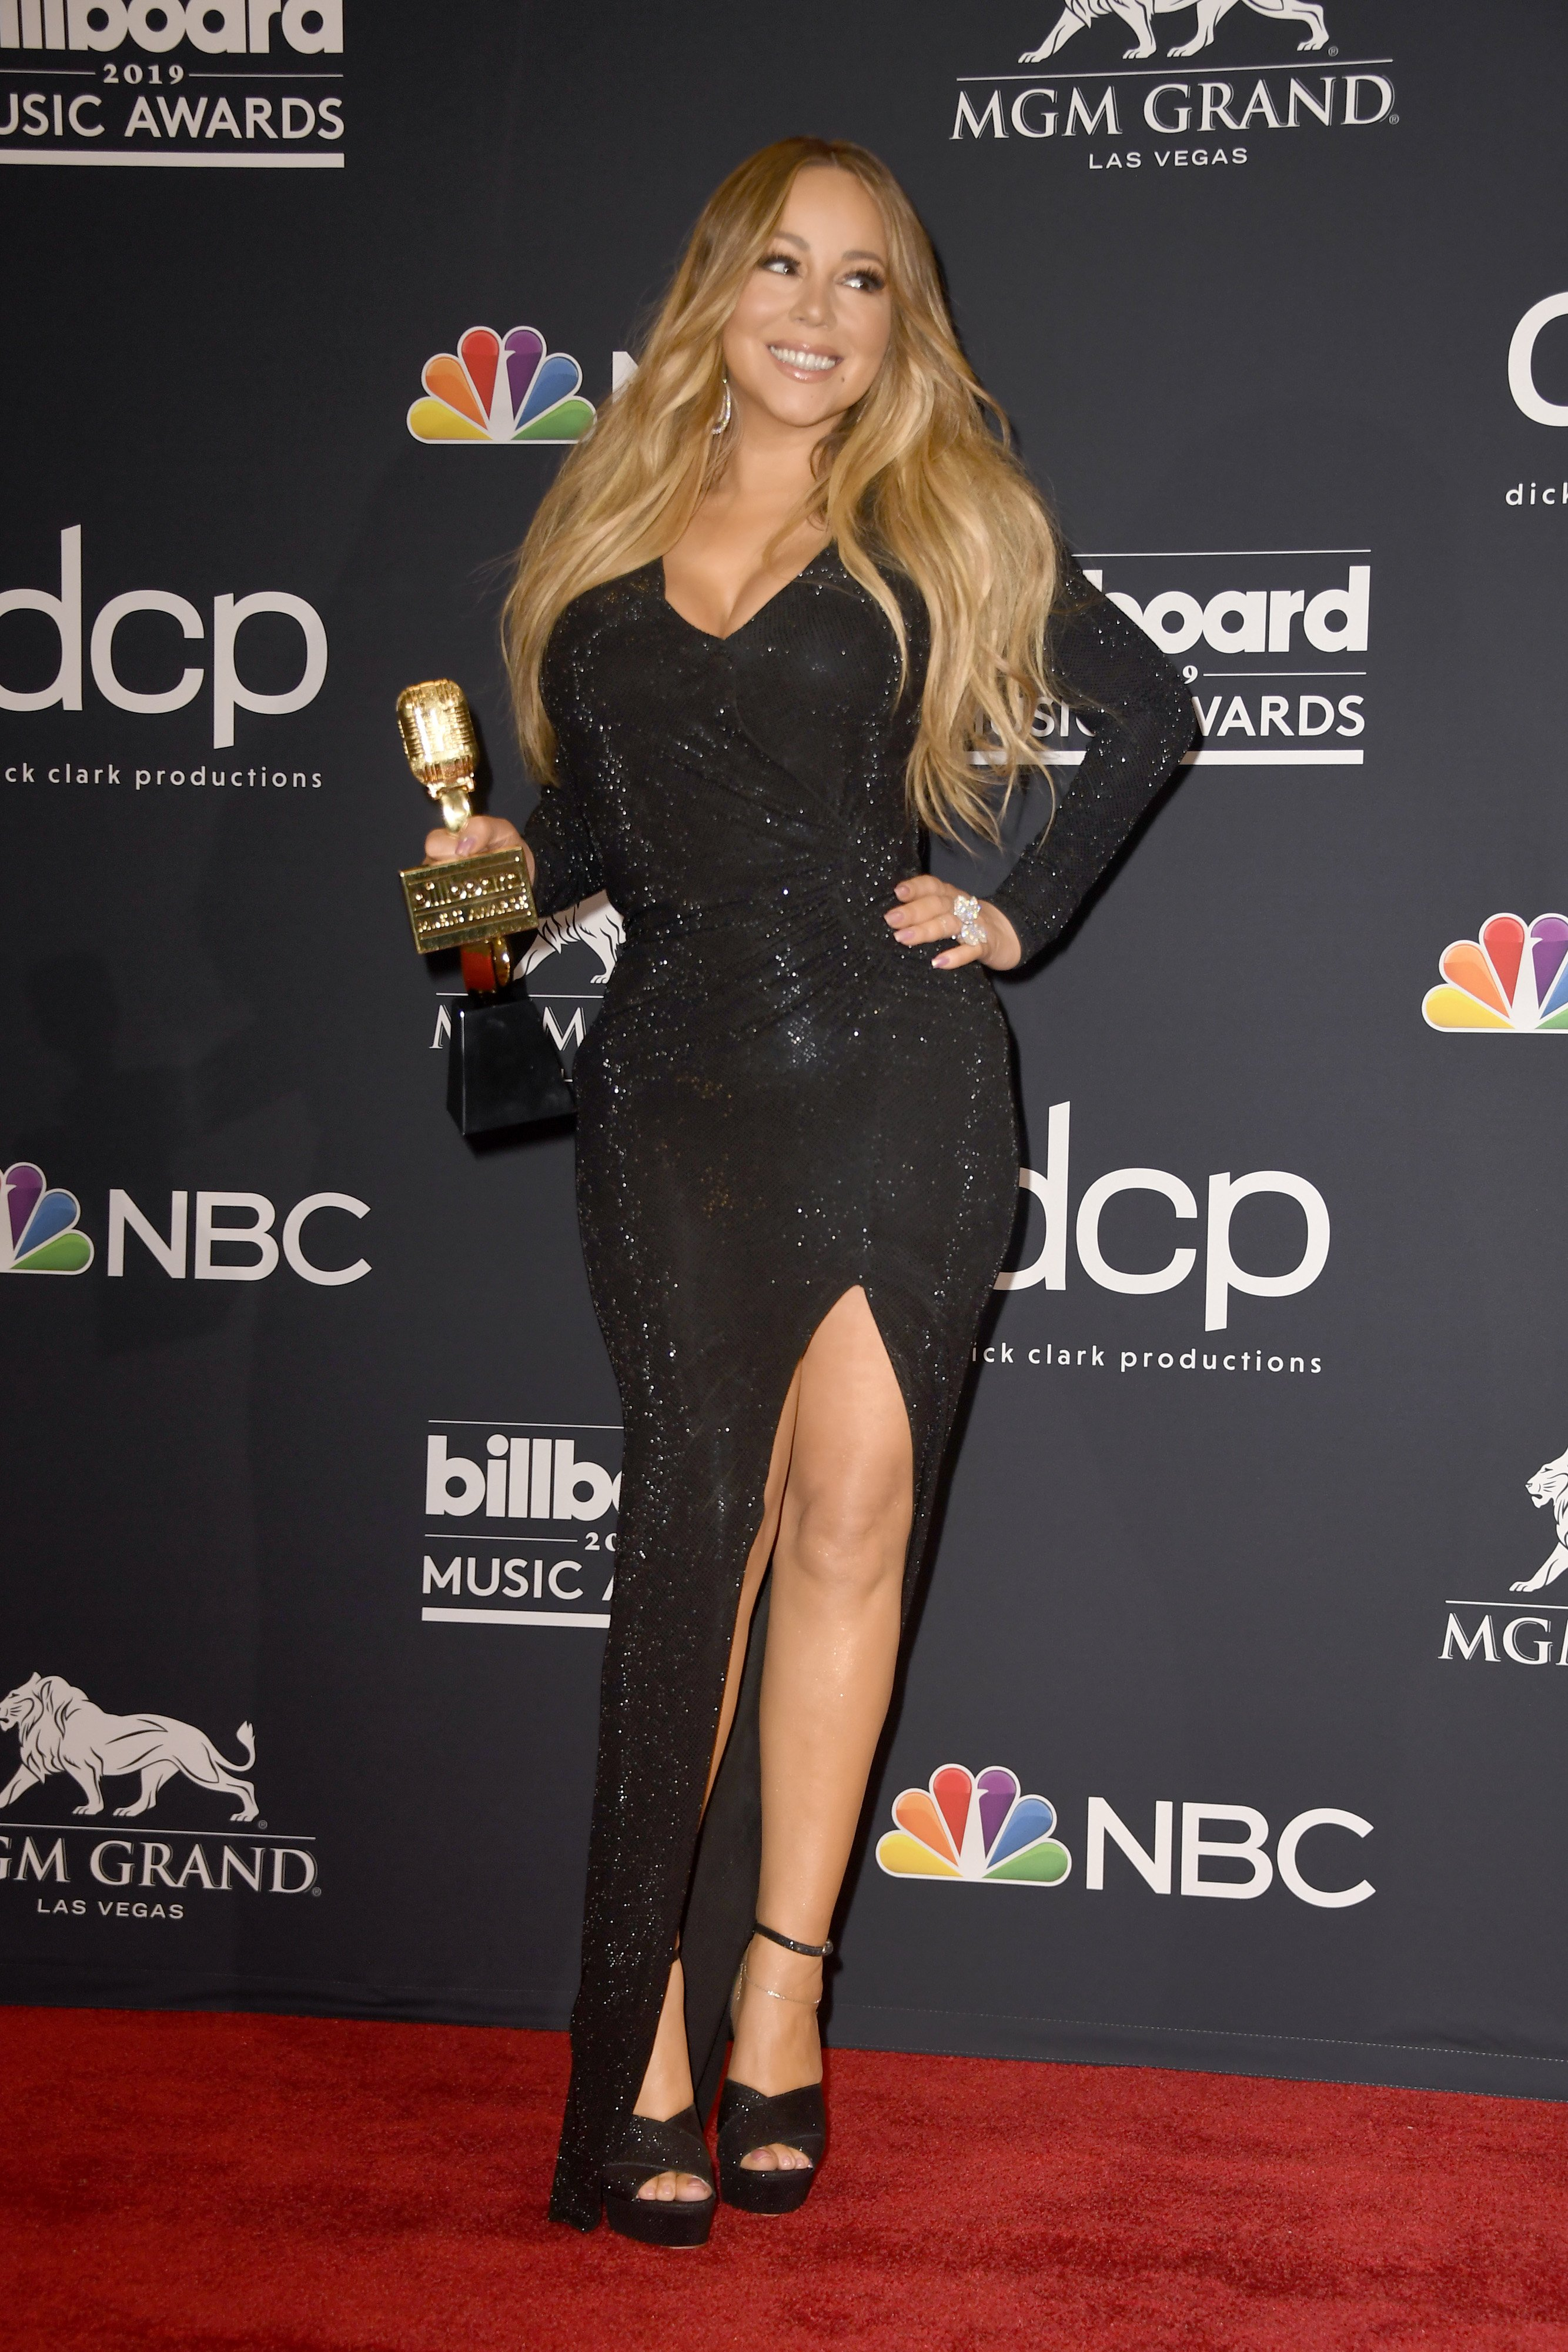 Mariah Carey poses with the Icon Award in the press room during the 2019 Billboard Music Awards on May 01, 2019, in Las Vegas, Nevada. | Source: Getty Images.